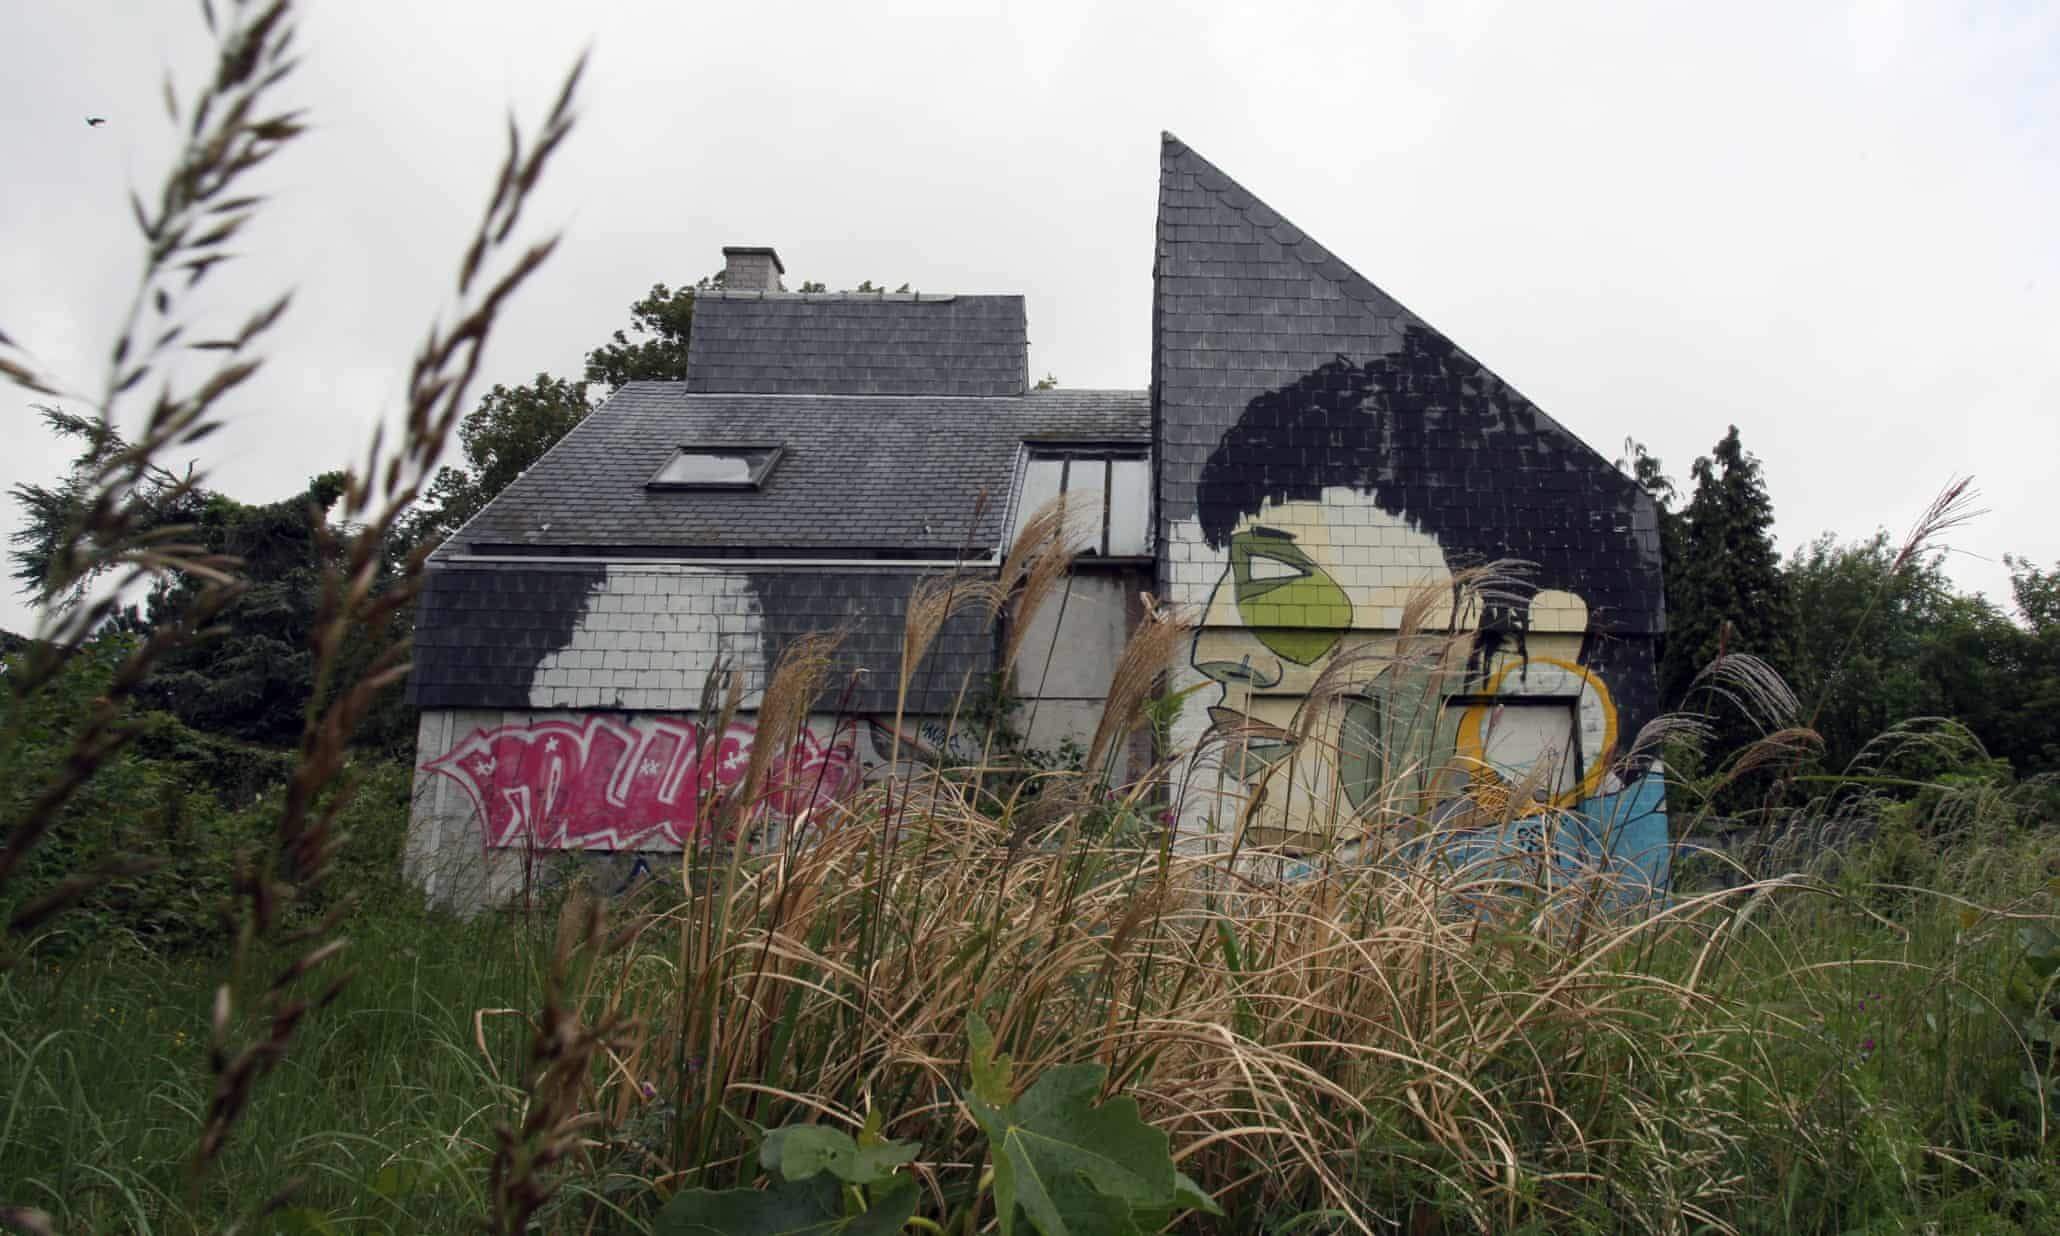 Street art takes over the ghost town of Doel – in pictures